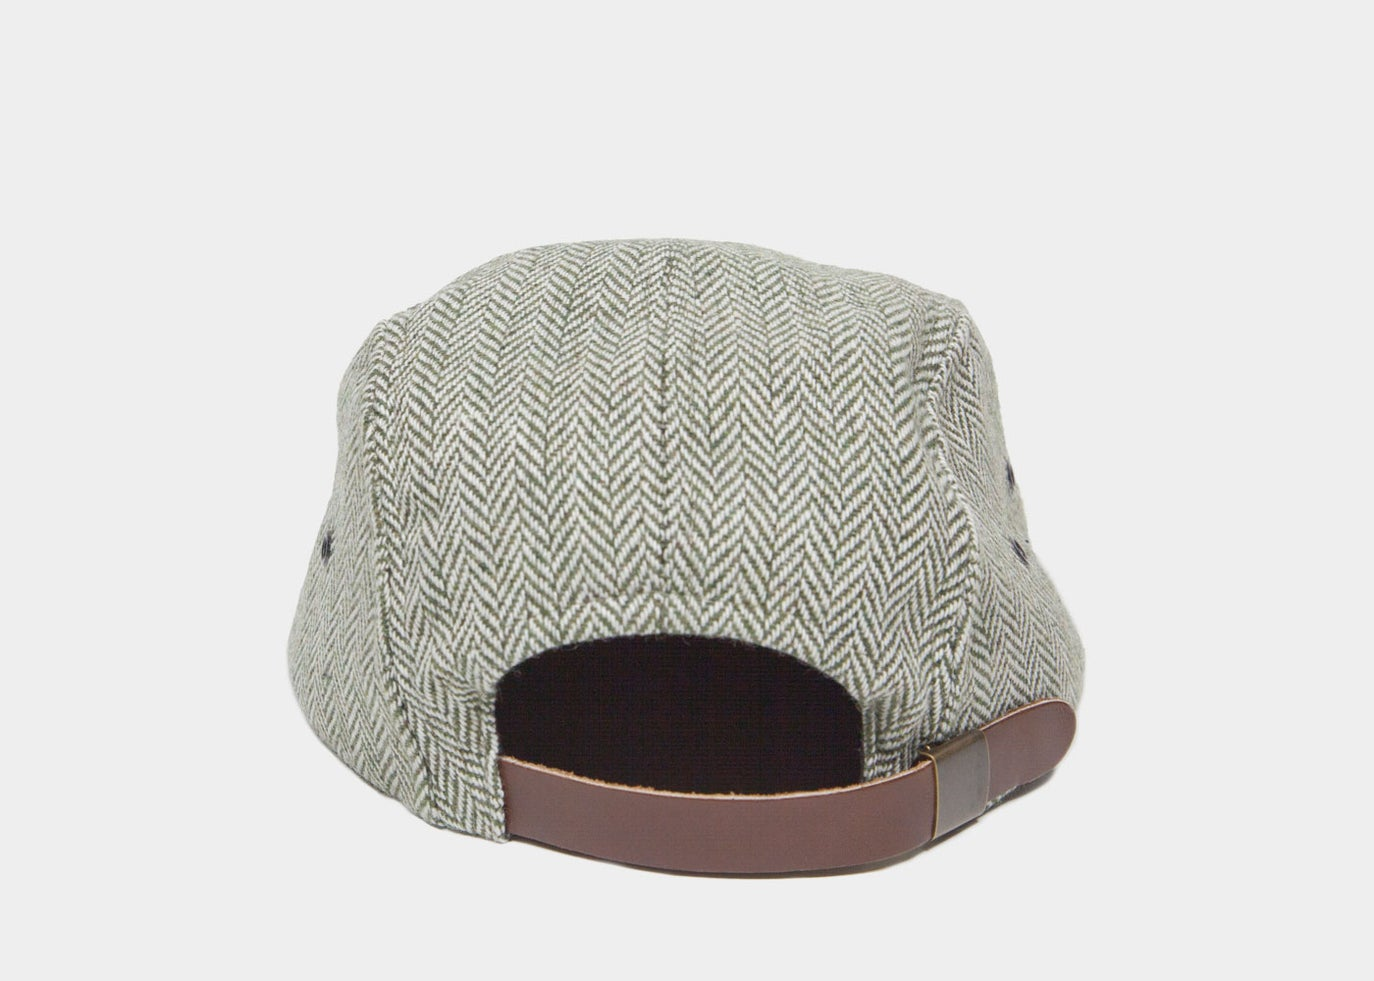 Image of The Tweed Cap